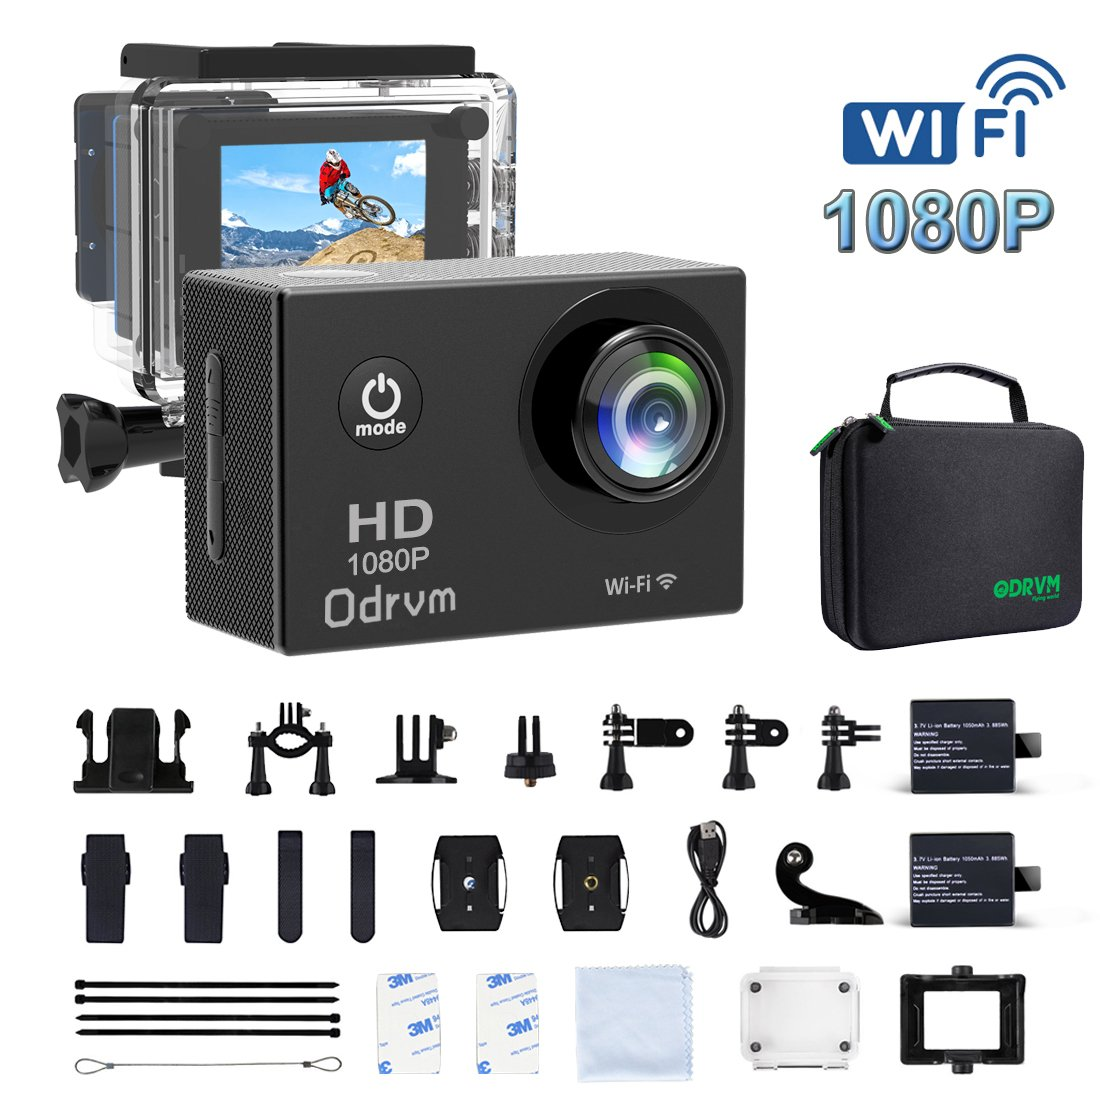 2.0-Inch WIFI Underwater Camera 12MP Sports Action Camera Diving 30M Waterproof Camera, HD 1080P Motorcycle Helmet Cam Bicycle Action Camcorders for Riding, Racing, Skiing, Motocross And Water Sports by ODRVM